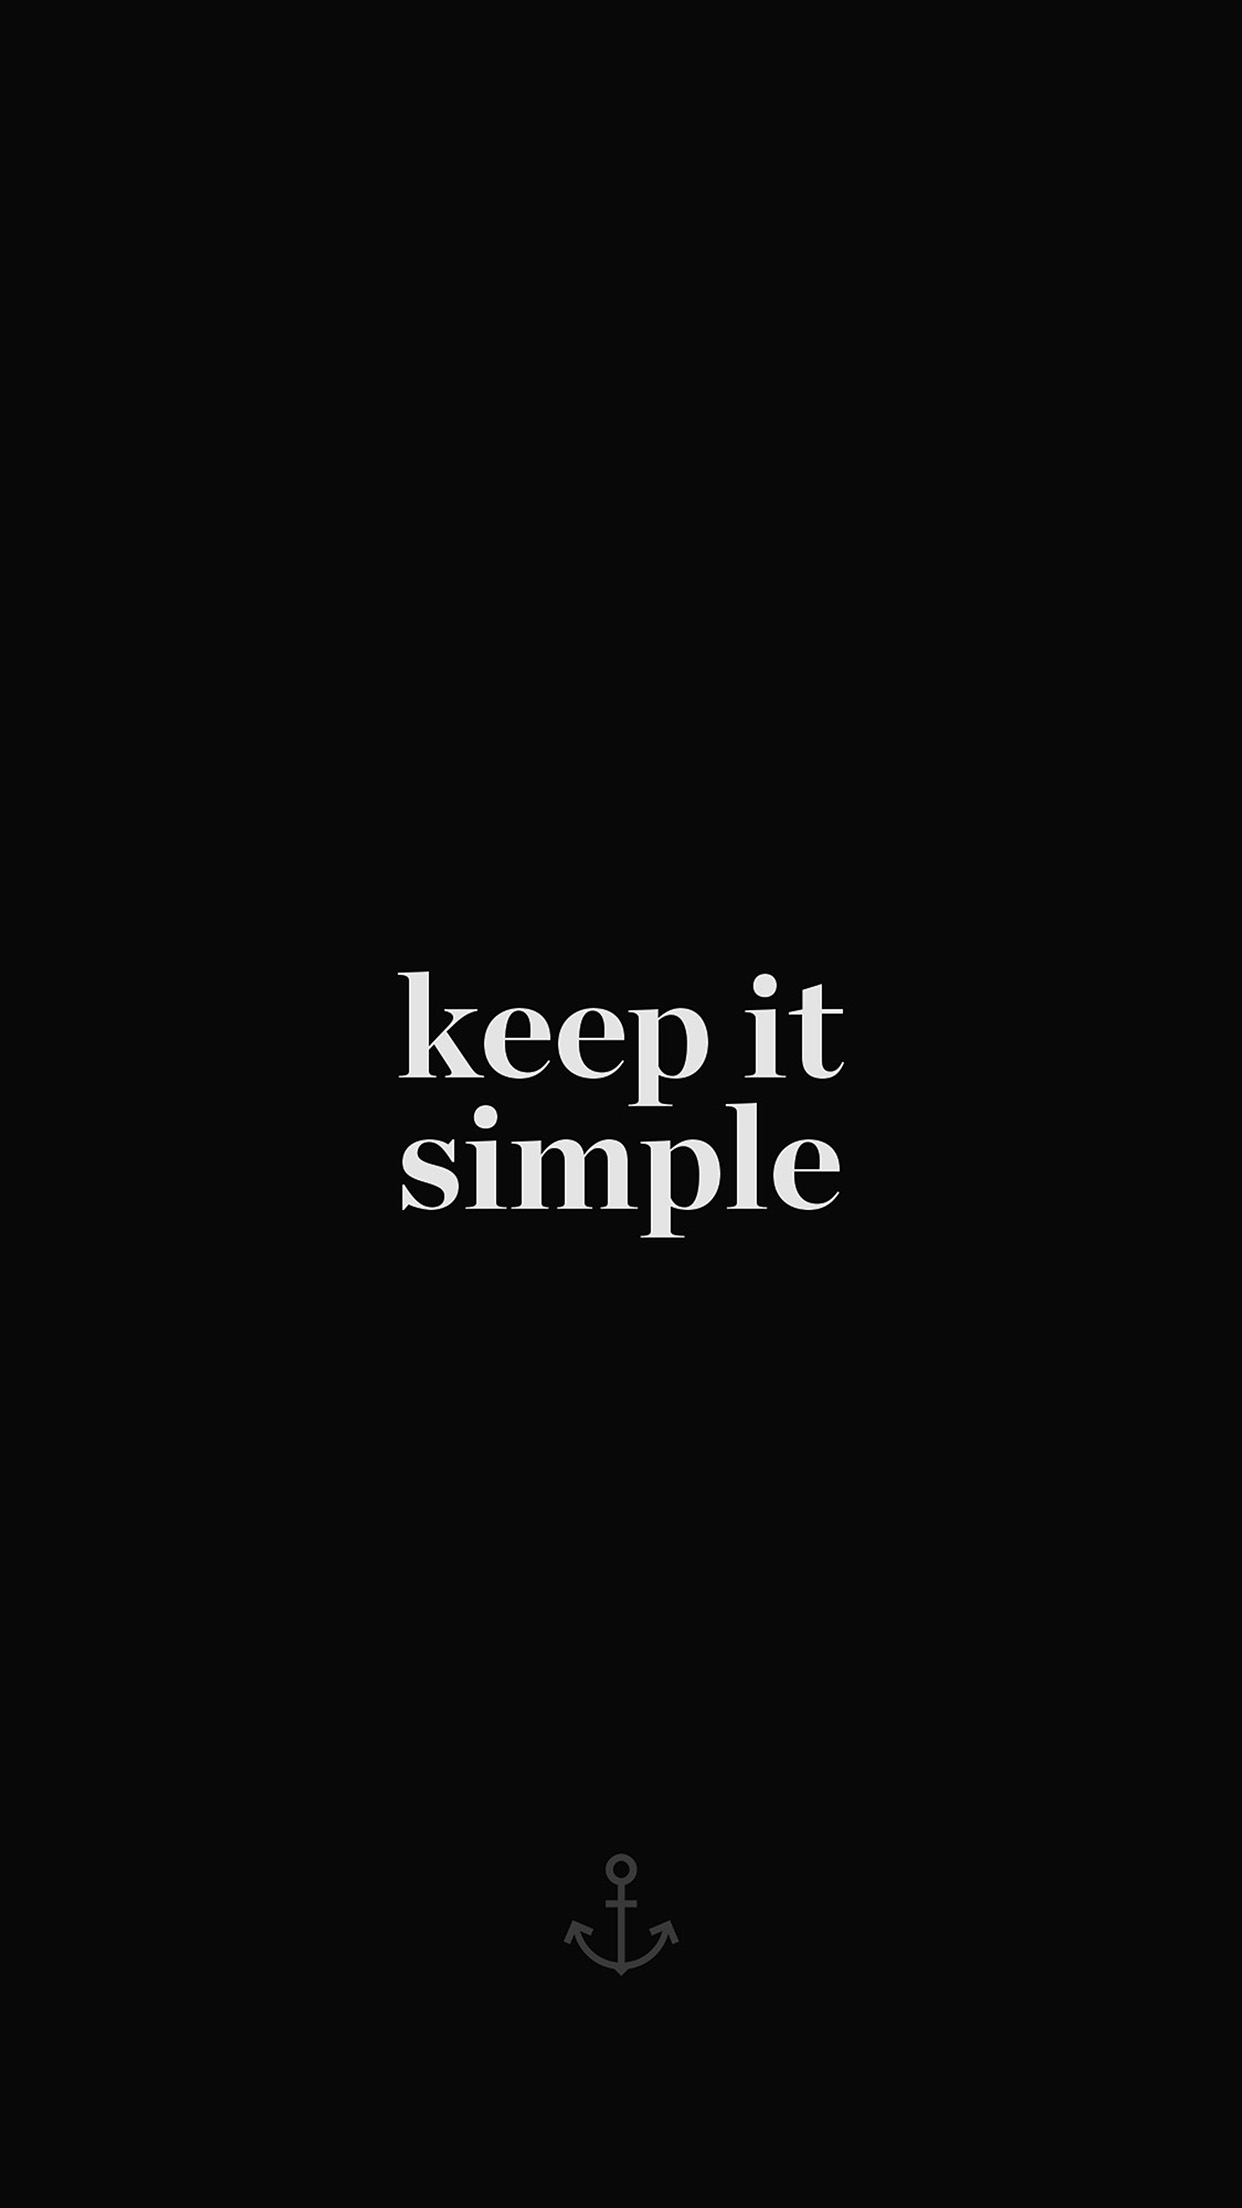 quotes wallpaper for iphone 6 plus